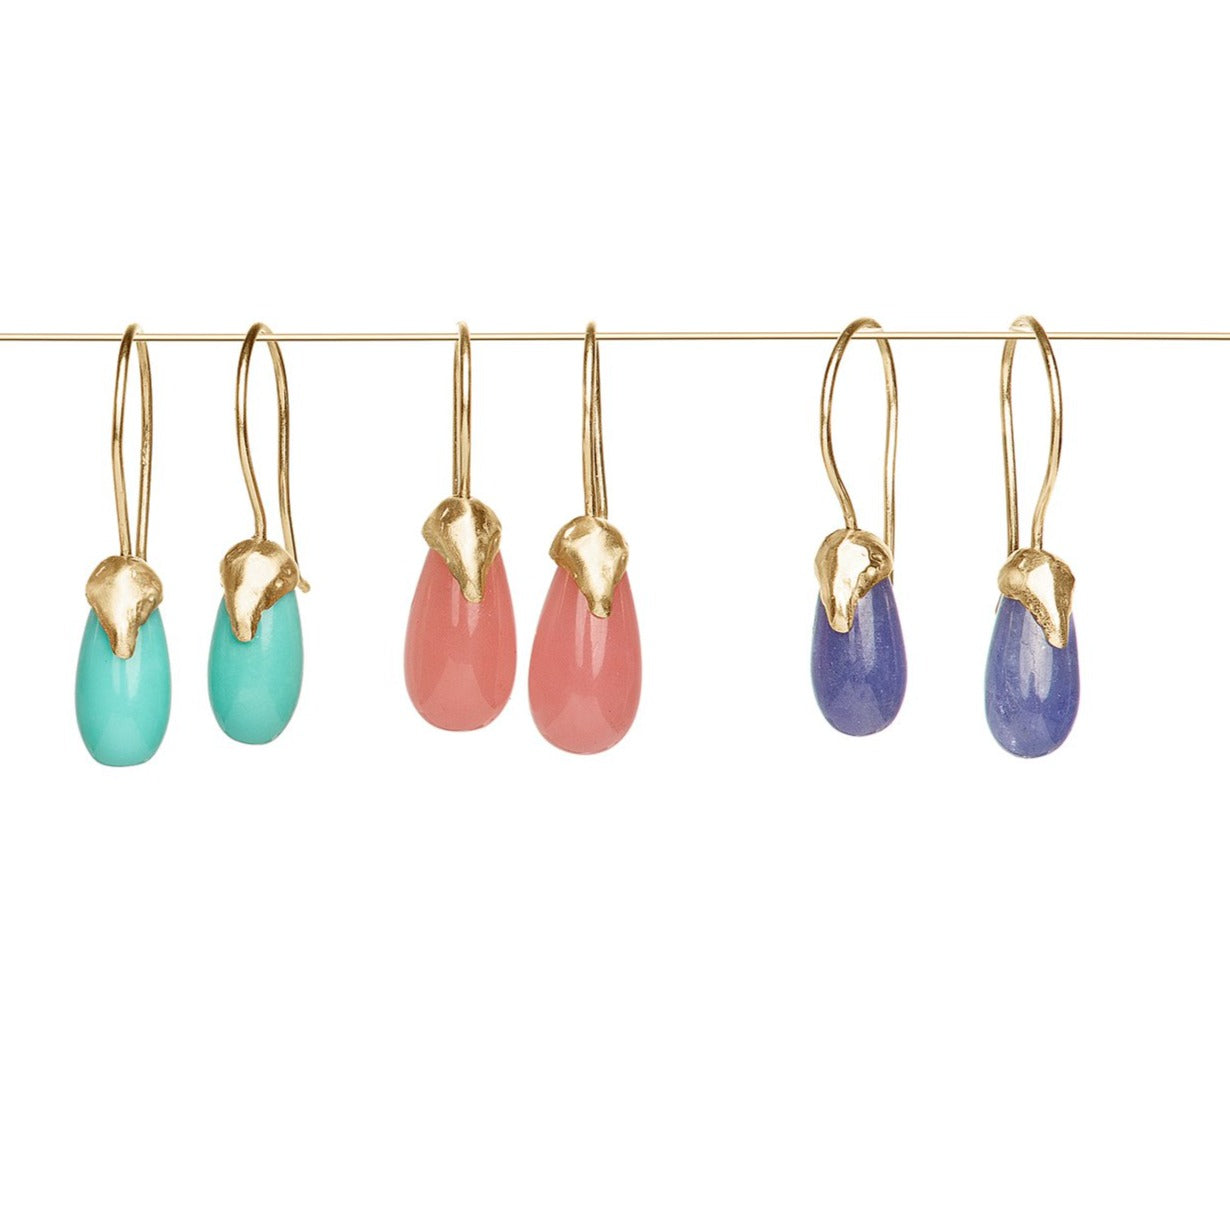 tanzanite drop earrings, turquoise drop earring and guava quartz drop earring with organic 14kt gold cap on ear wire drop